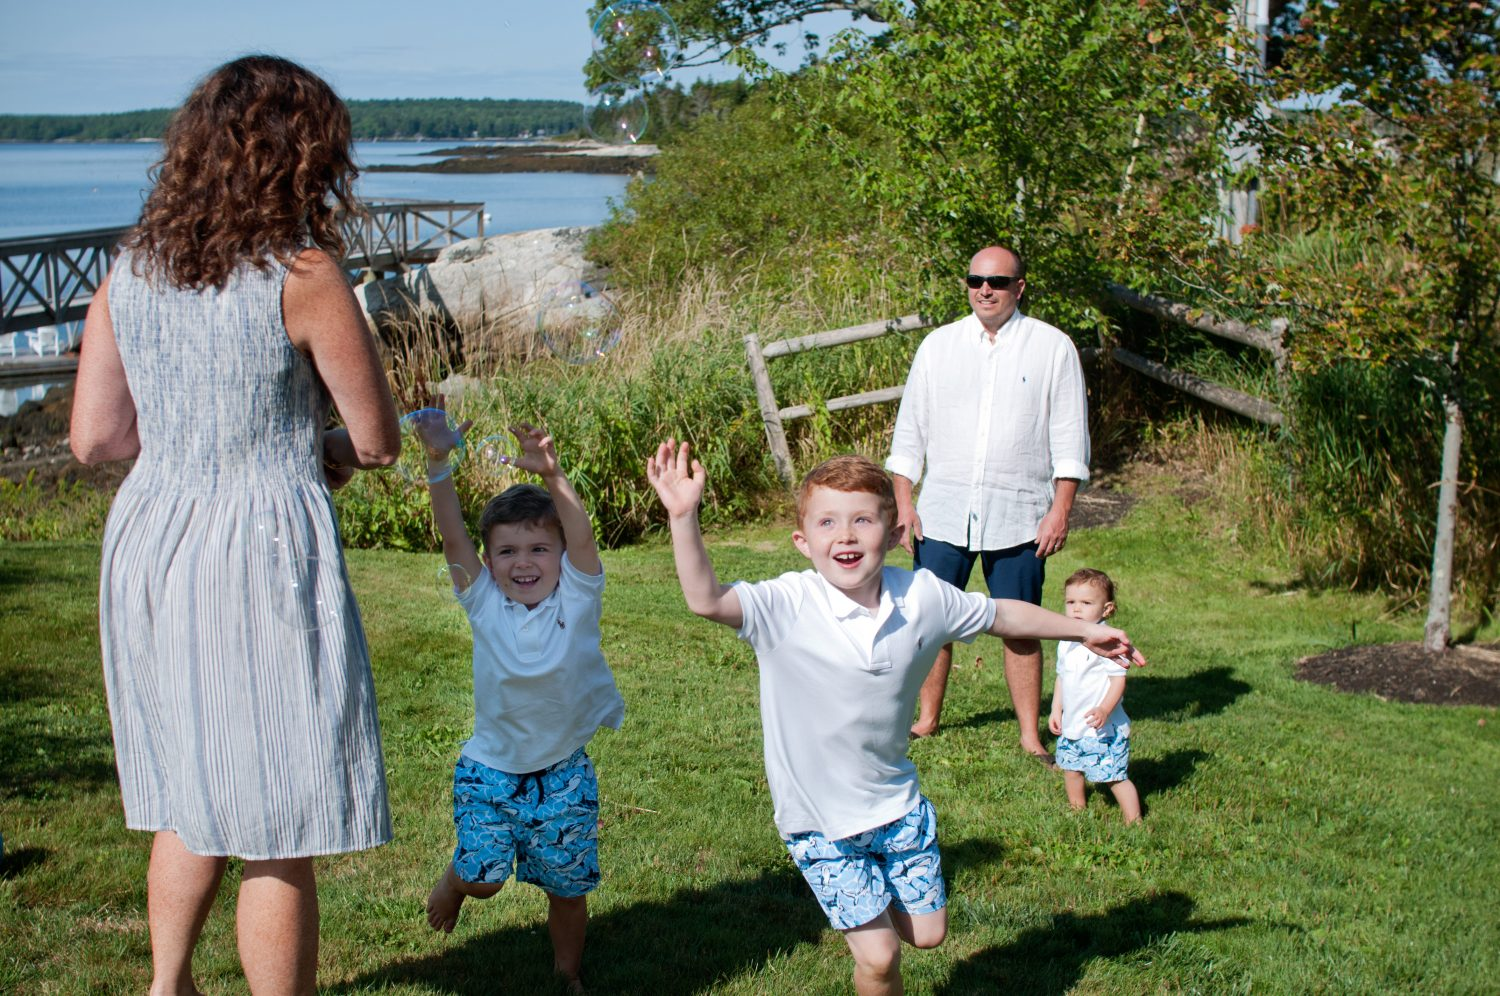 Children chasing bubbles at their coastal rental home